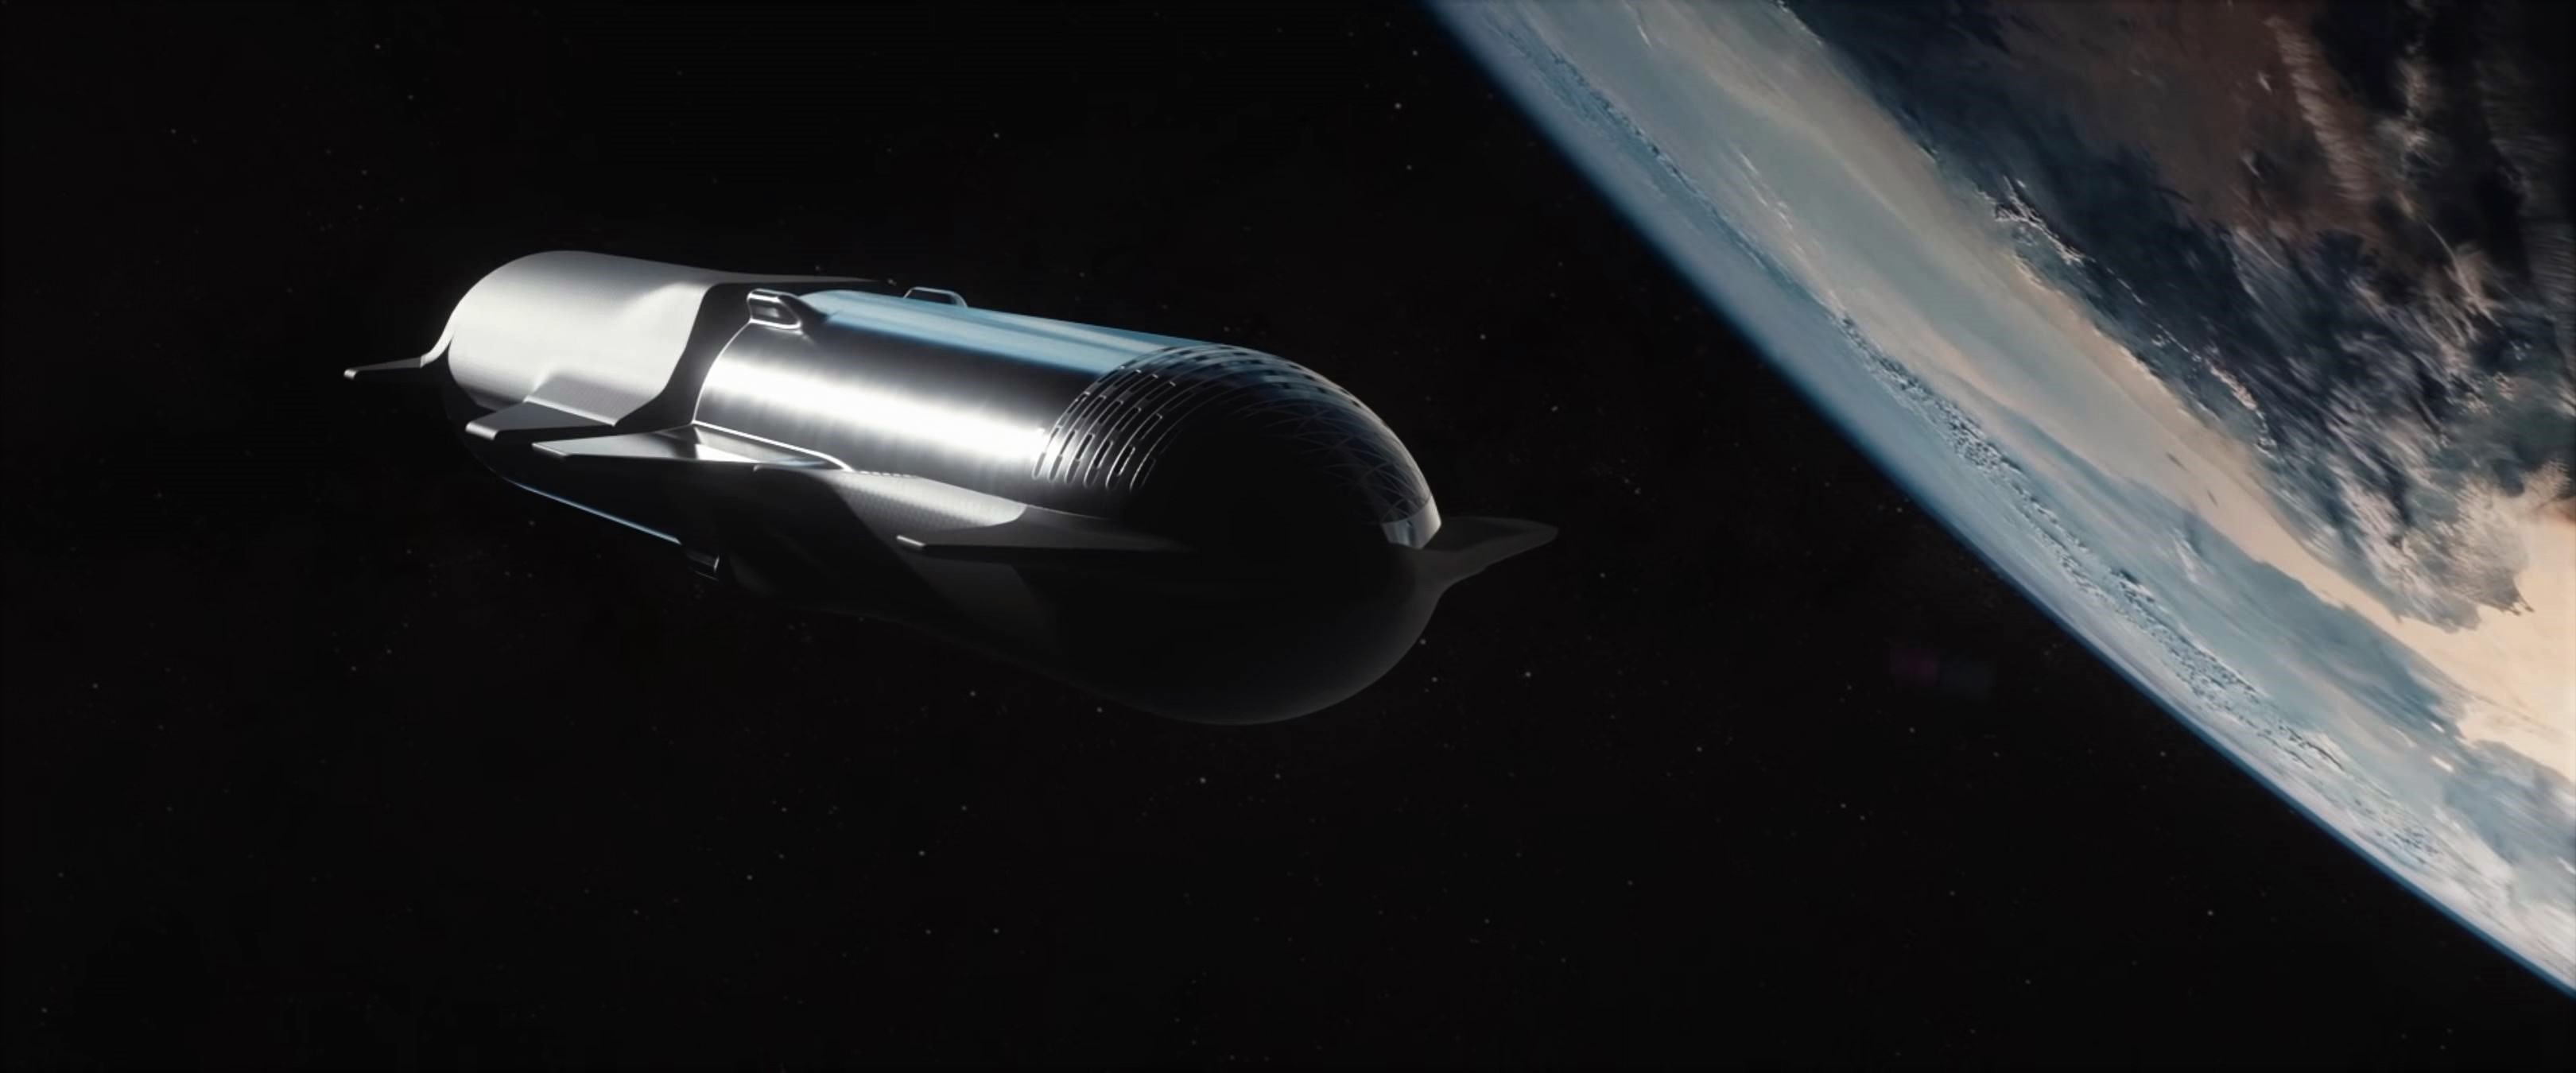 Starship Super Heavy 2019 (SpaceX) refueling 6 crop